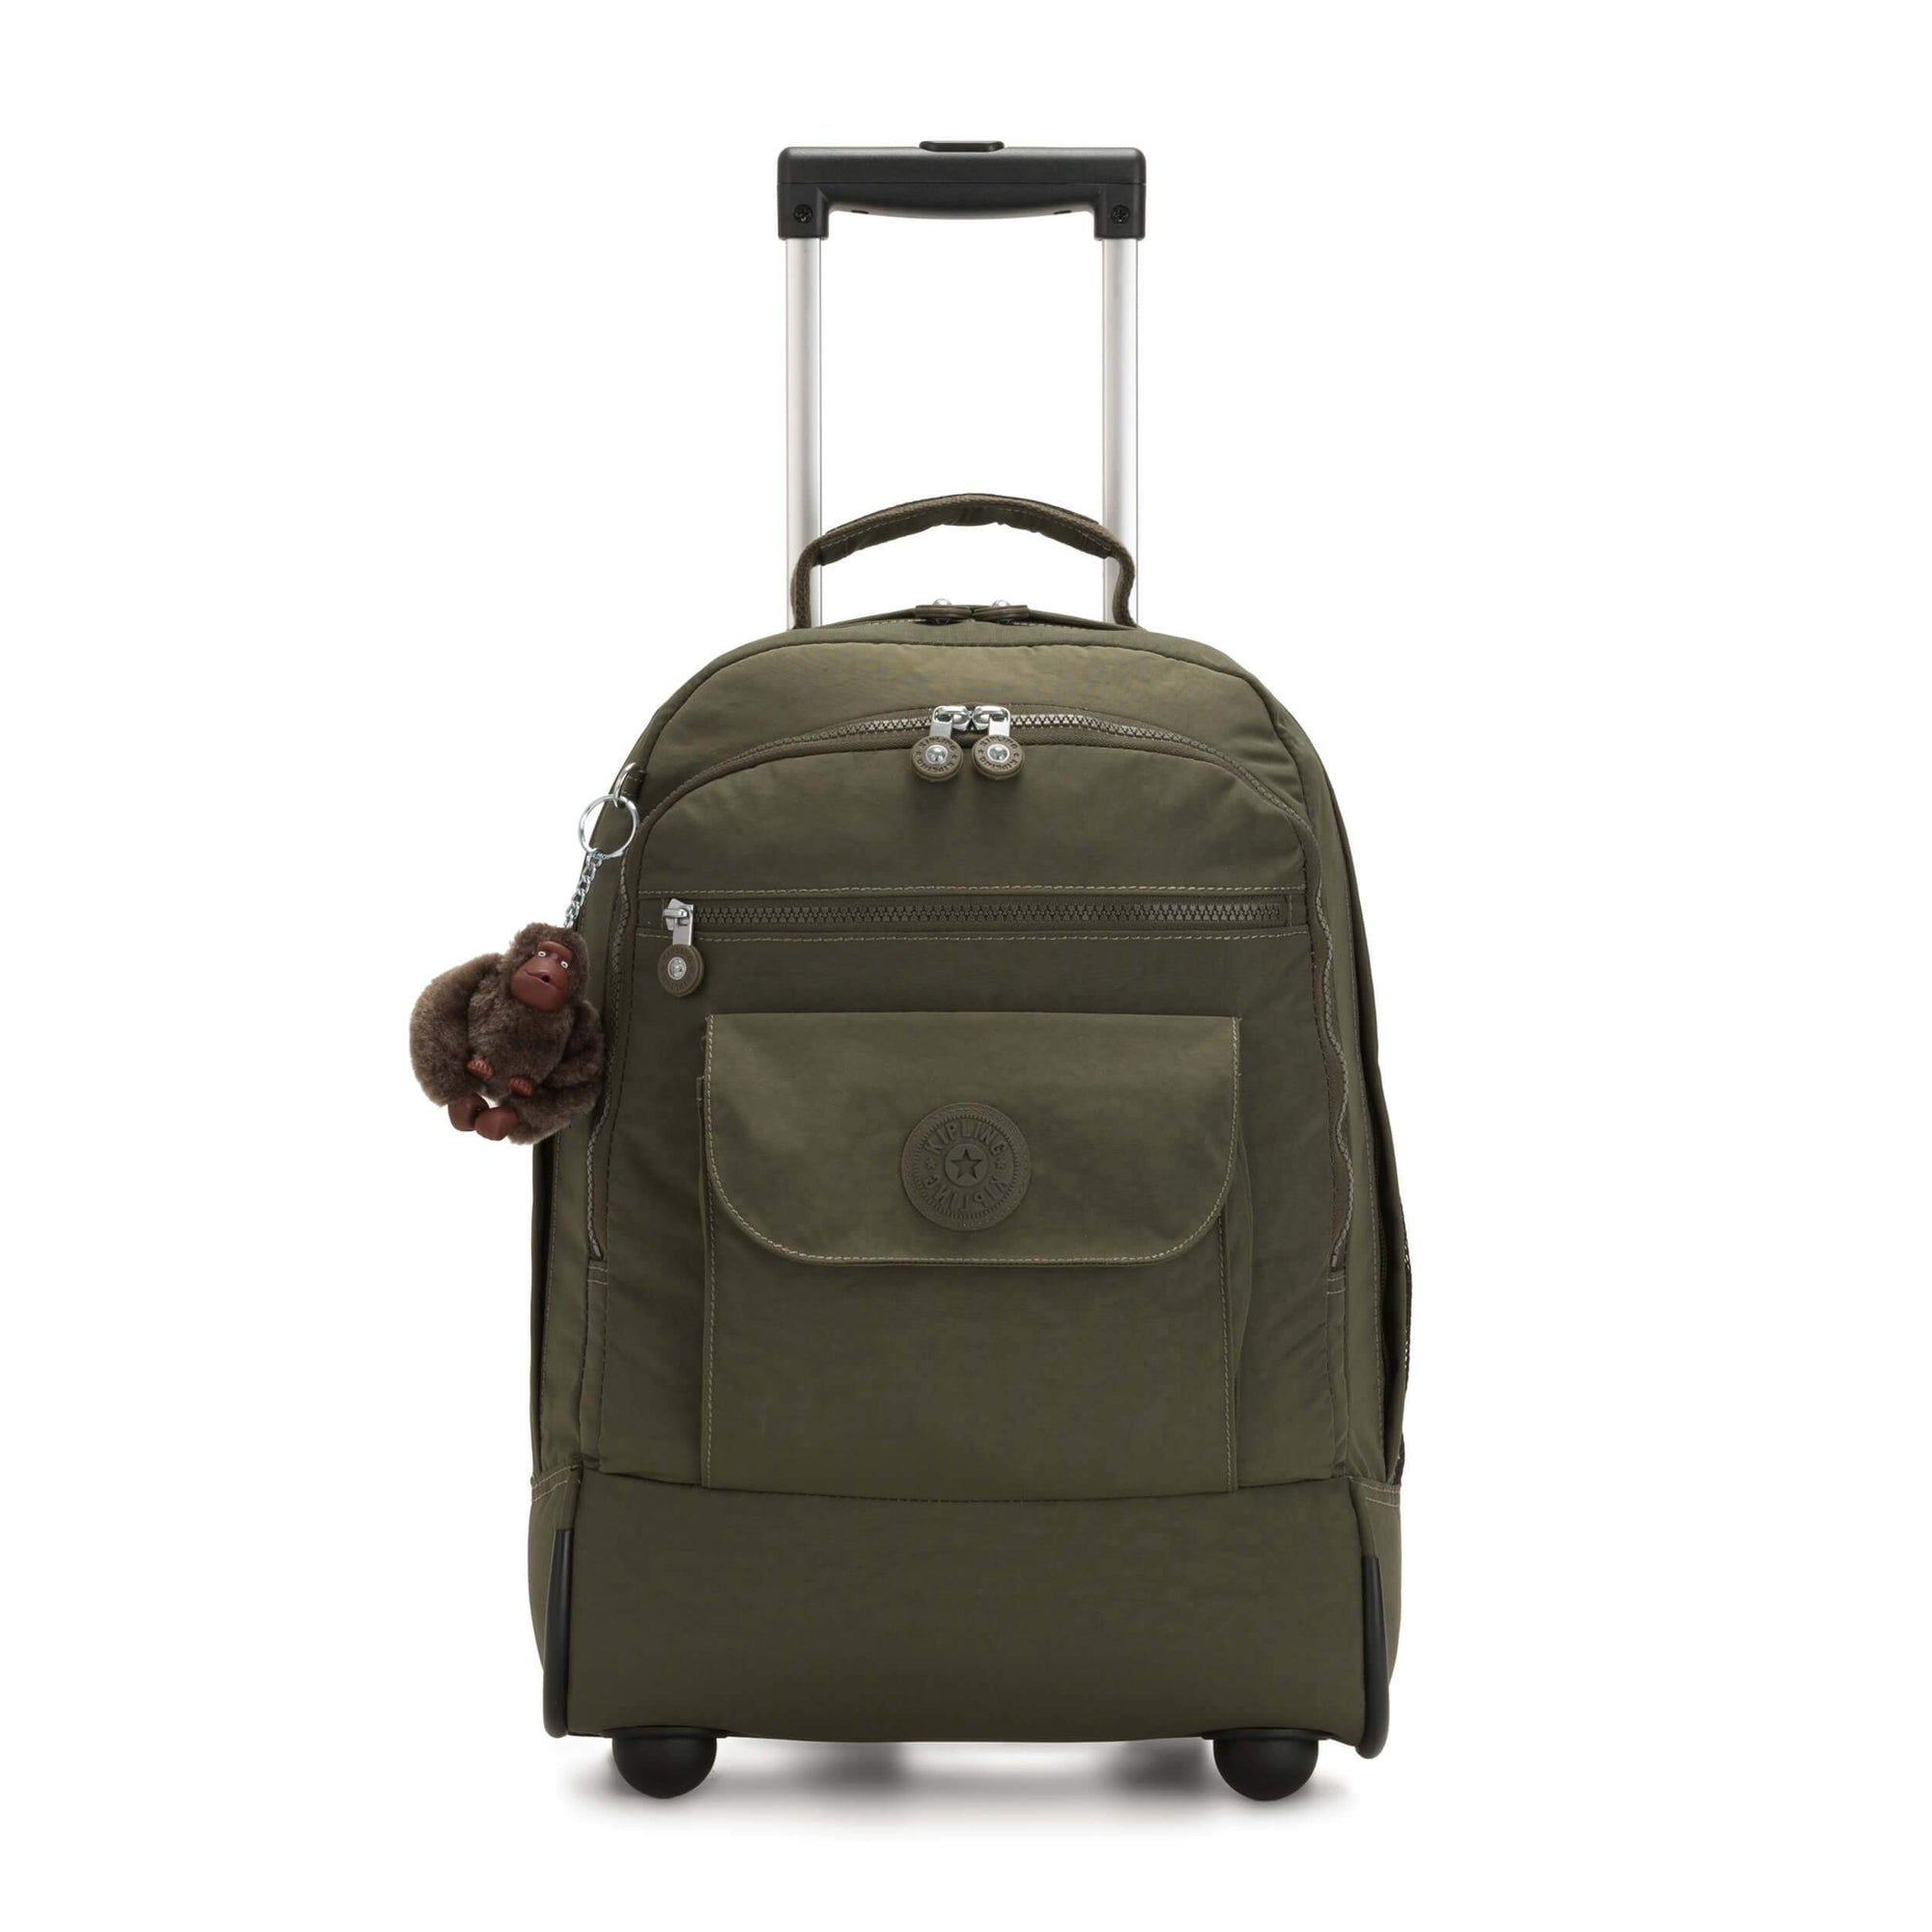 Mochila Kipling Sanaa Jaded Green